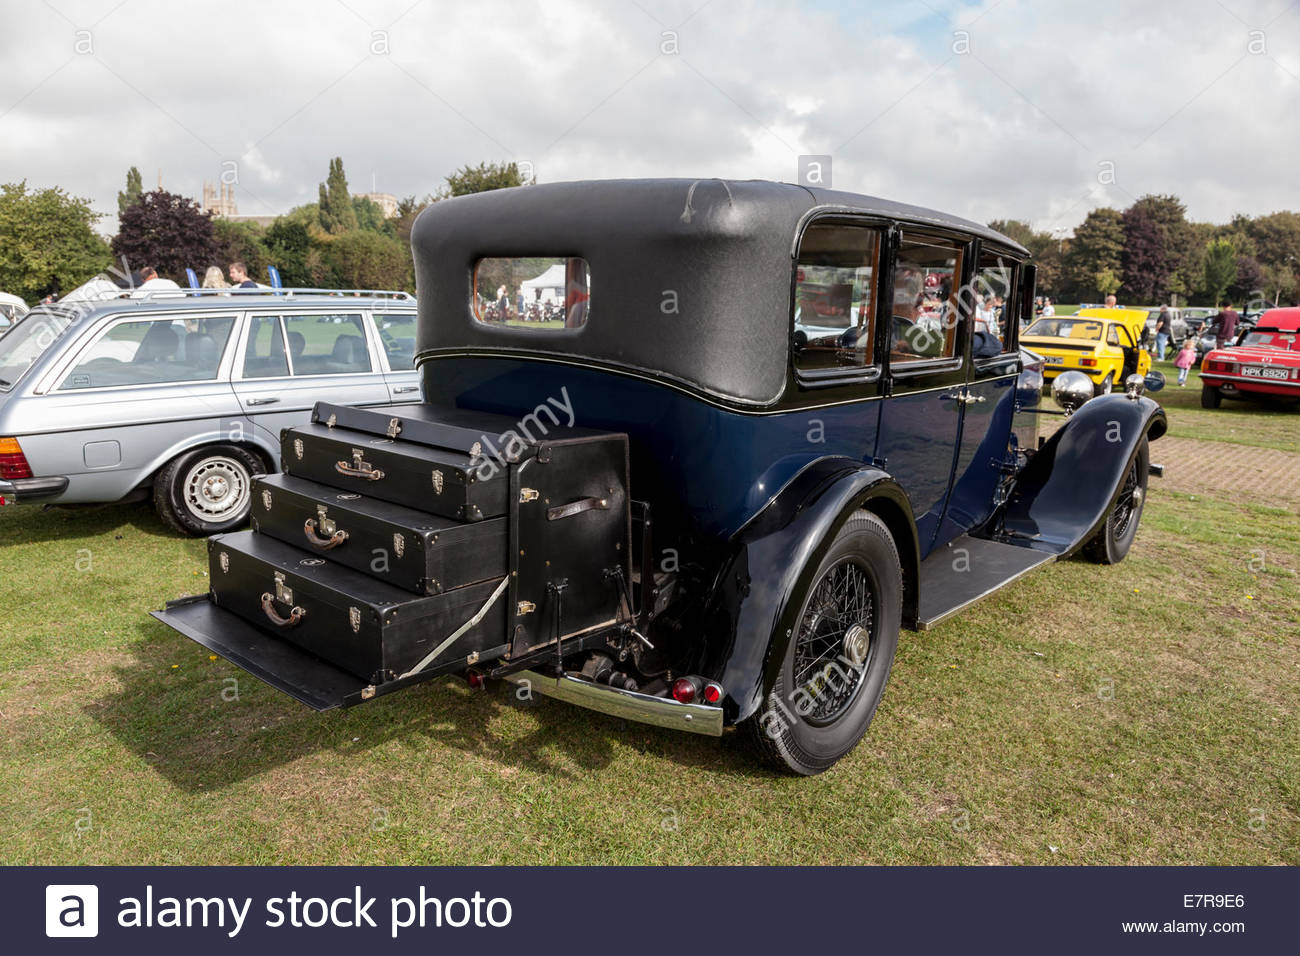 Luggage rack on the back of a Rolls Royce classic car Stock Photo ...